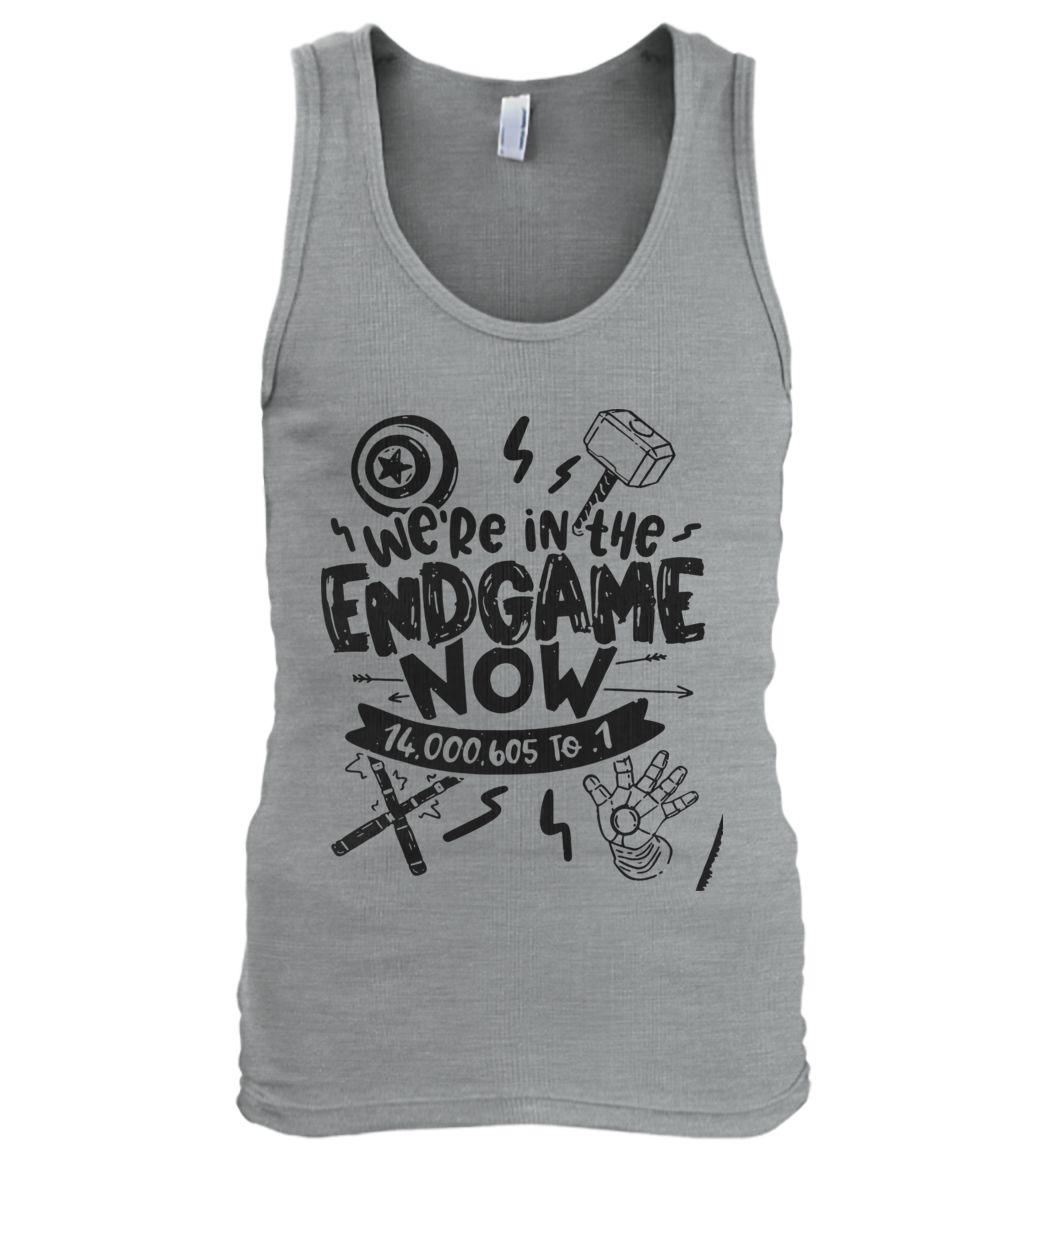 Avengers end game we're in the endgame now men's tank top